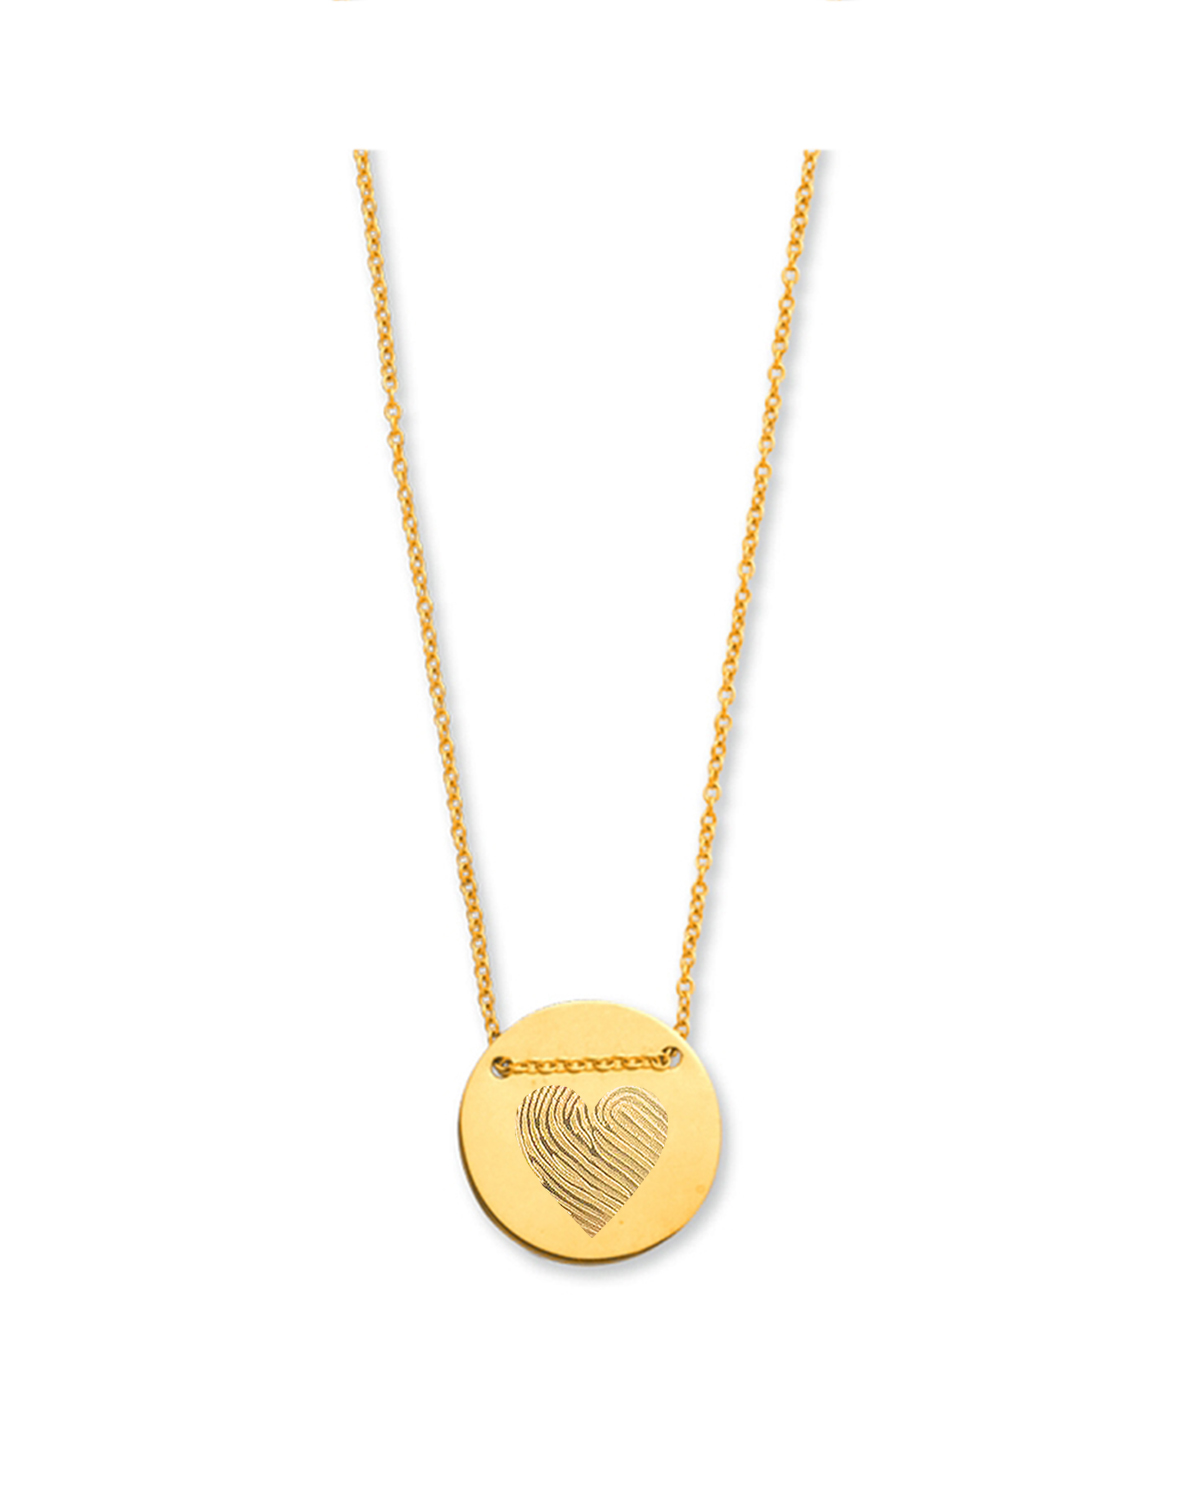 18K Heart Chain Necklace